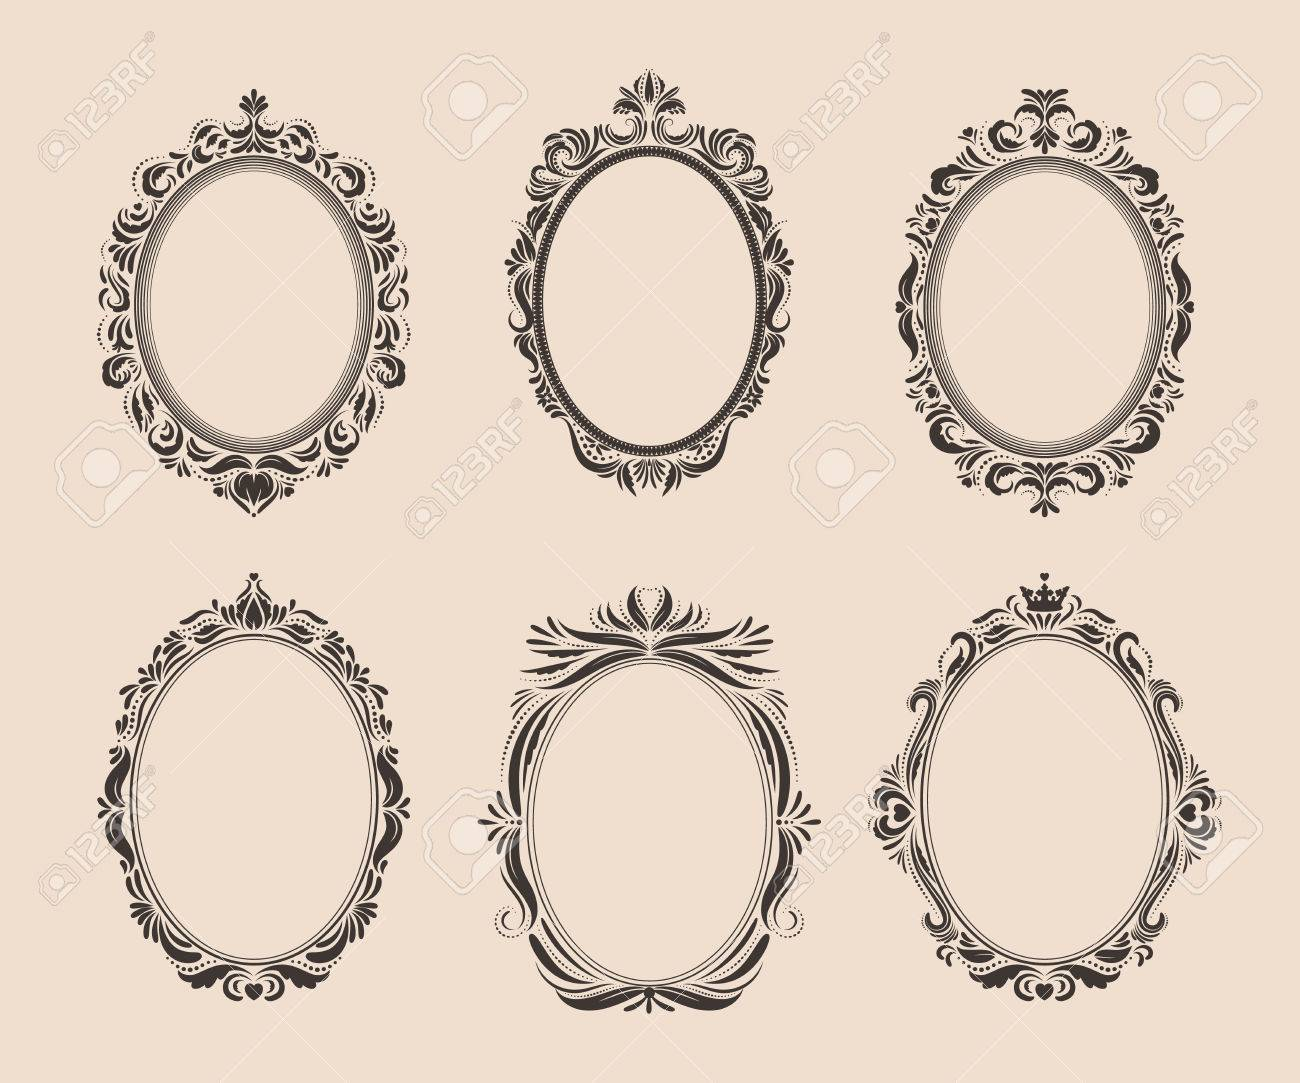 Set Of Decorative Oval Vintage Frames And Borders Victorian